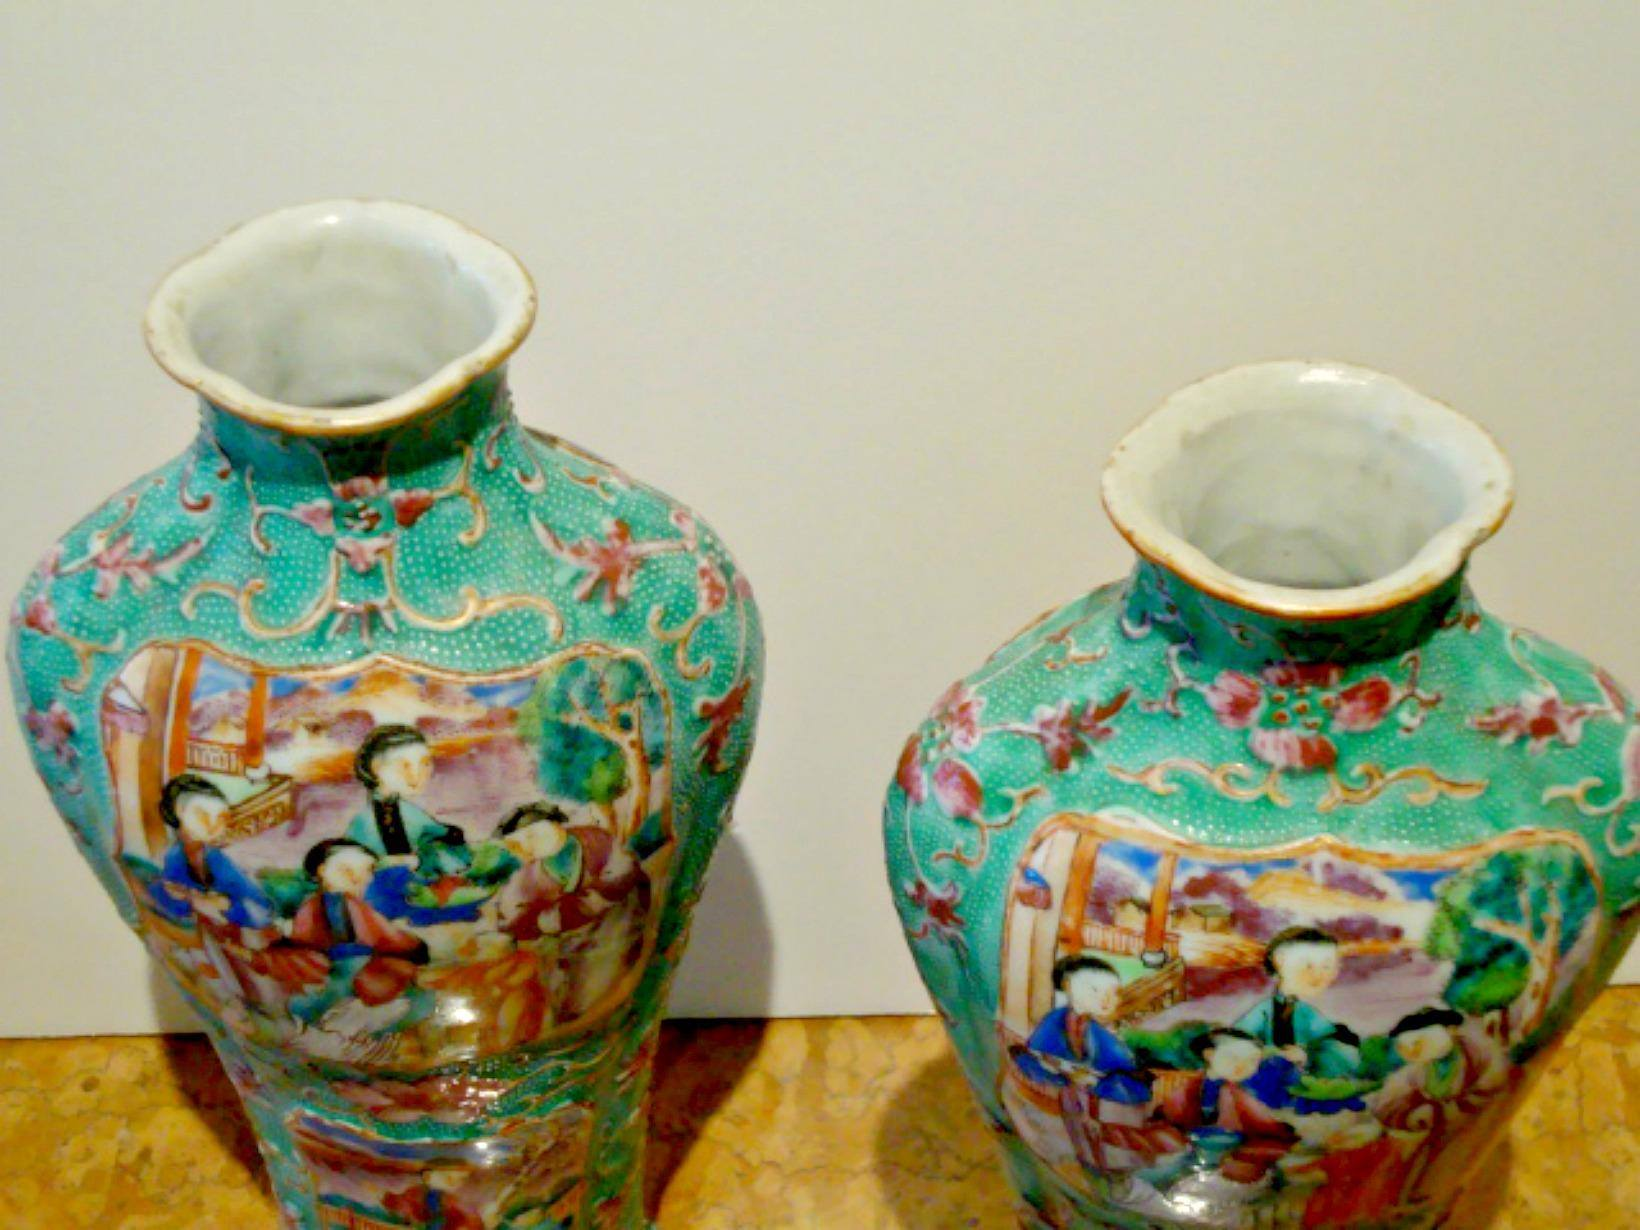 A five pair of chinese export vases chicken skin texture for sale a very fine pair of antiques chinese porcelain vases circa 1715 to 1725 with a chicken skin texture a beautiful turquoise ground with reserves of white floridaeventfo Choice Image